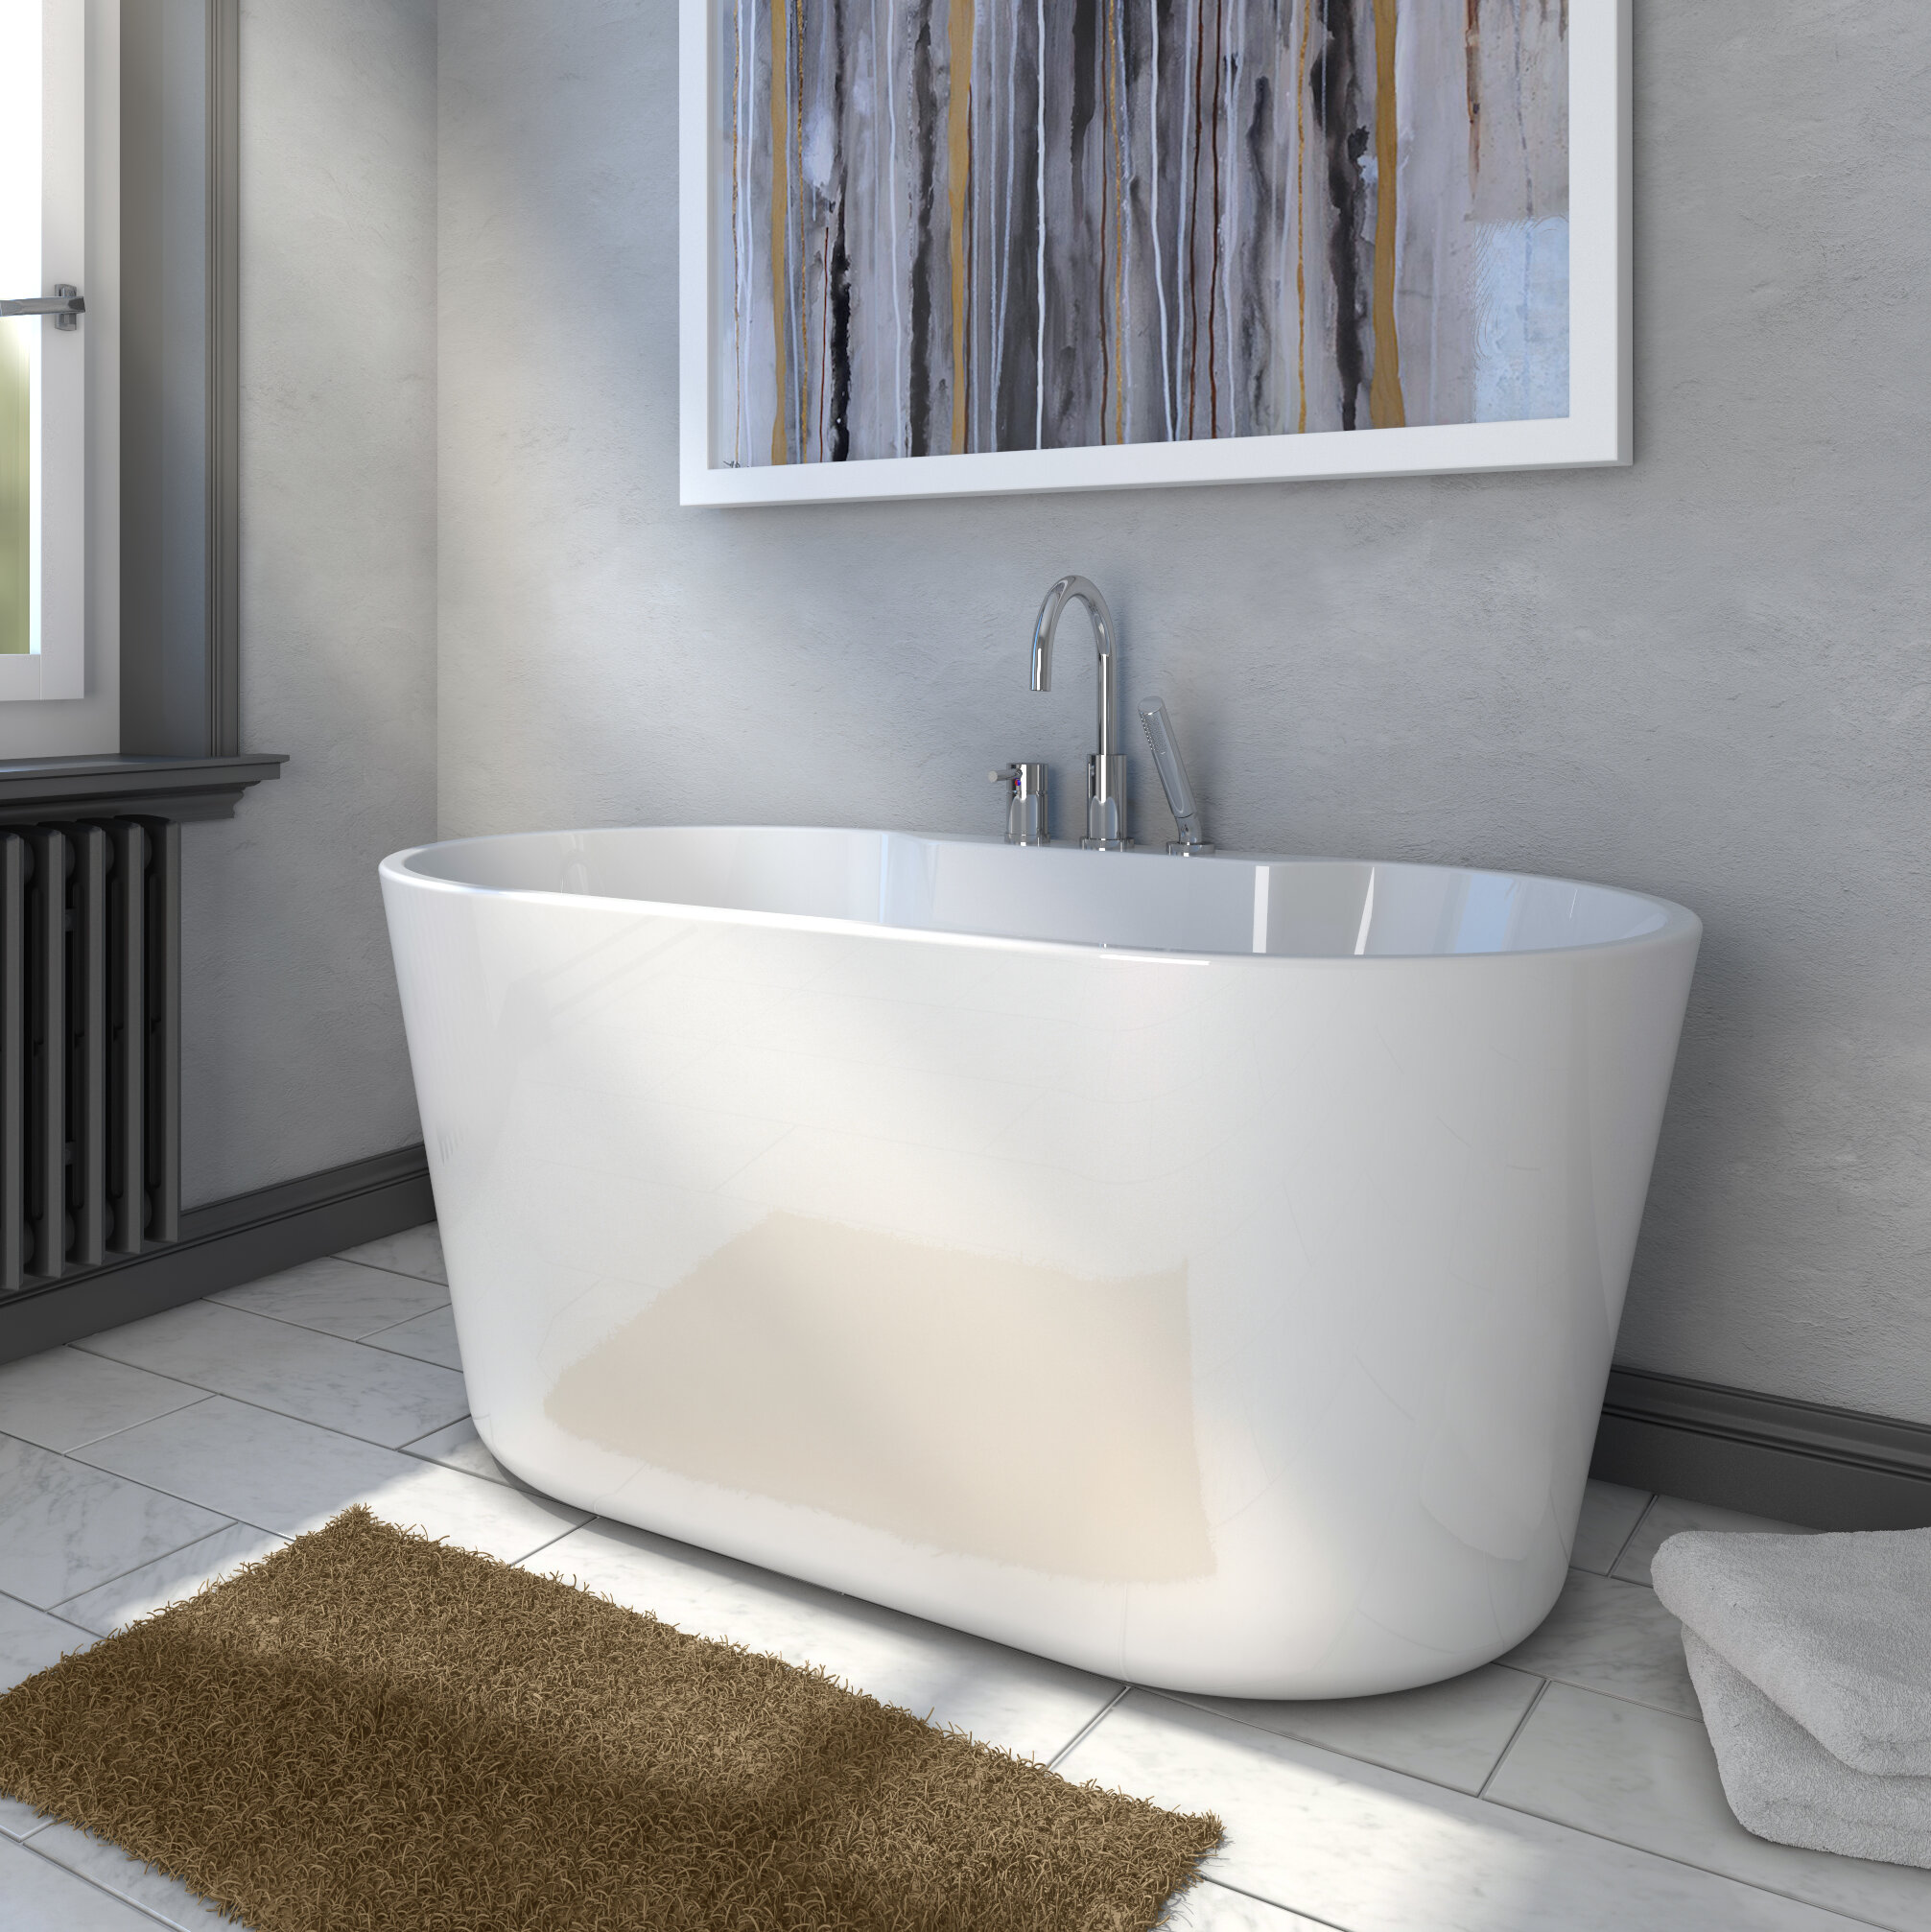 56 X 31 Freestanding Soaking Bathtub